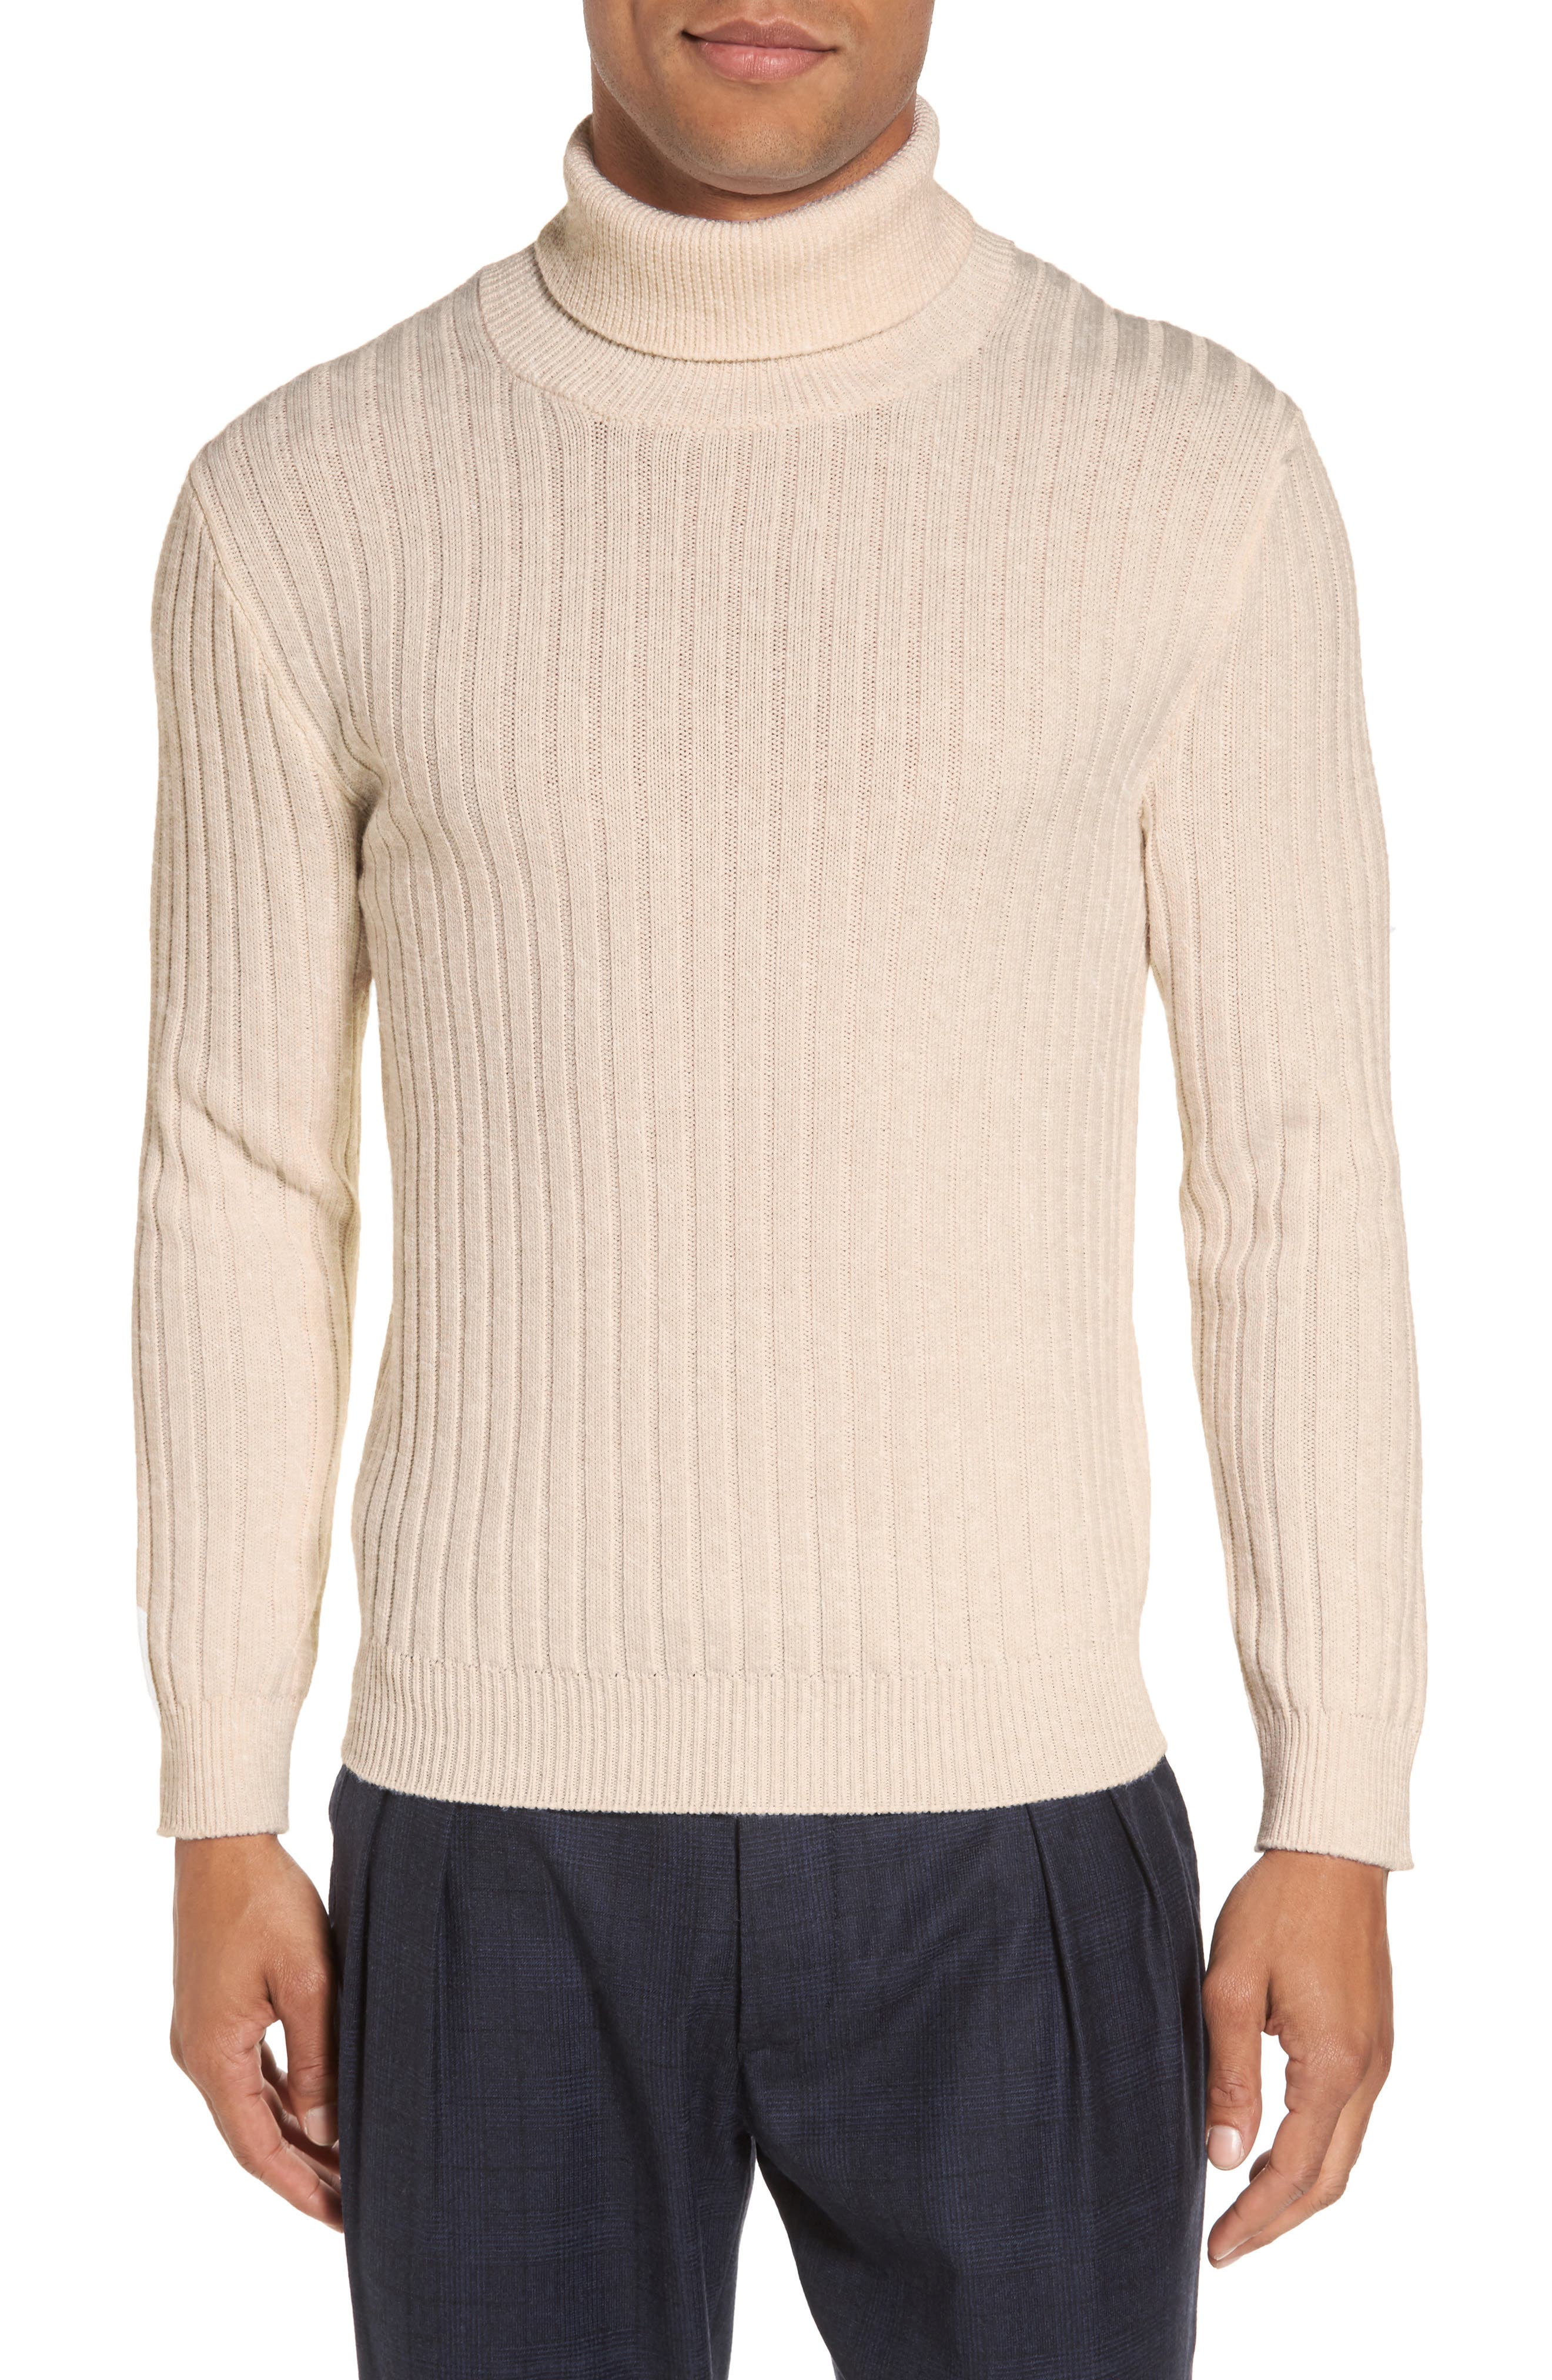 Ribbed Turtleneck Wool Sweater,                         Main,                         color, Cream